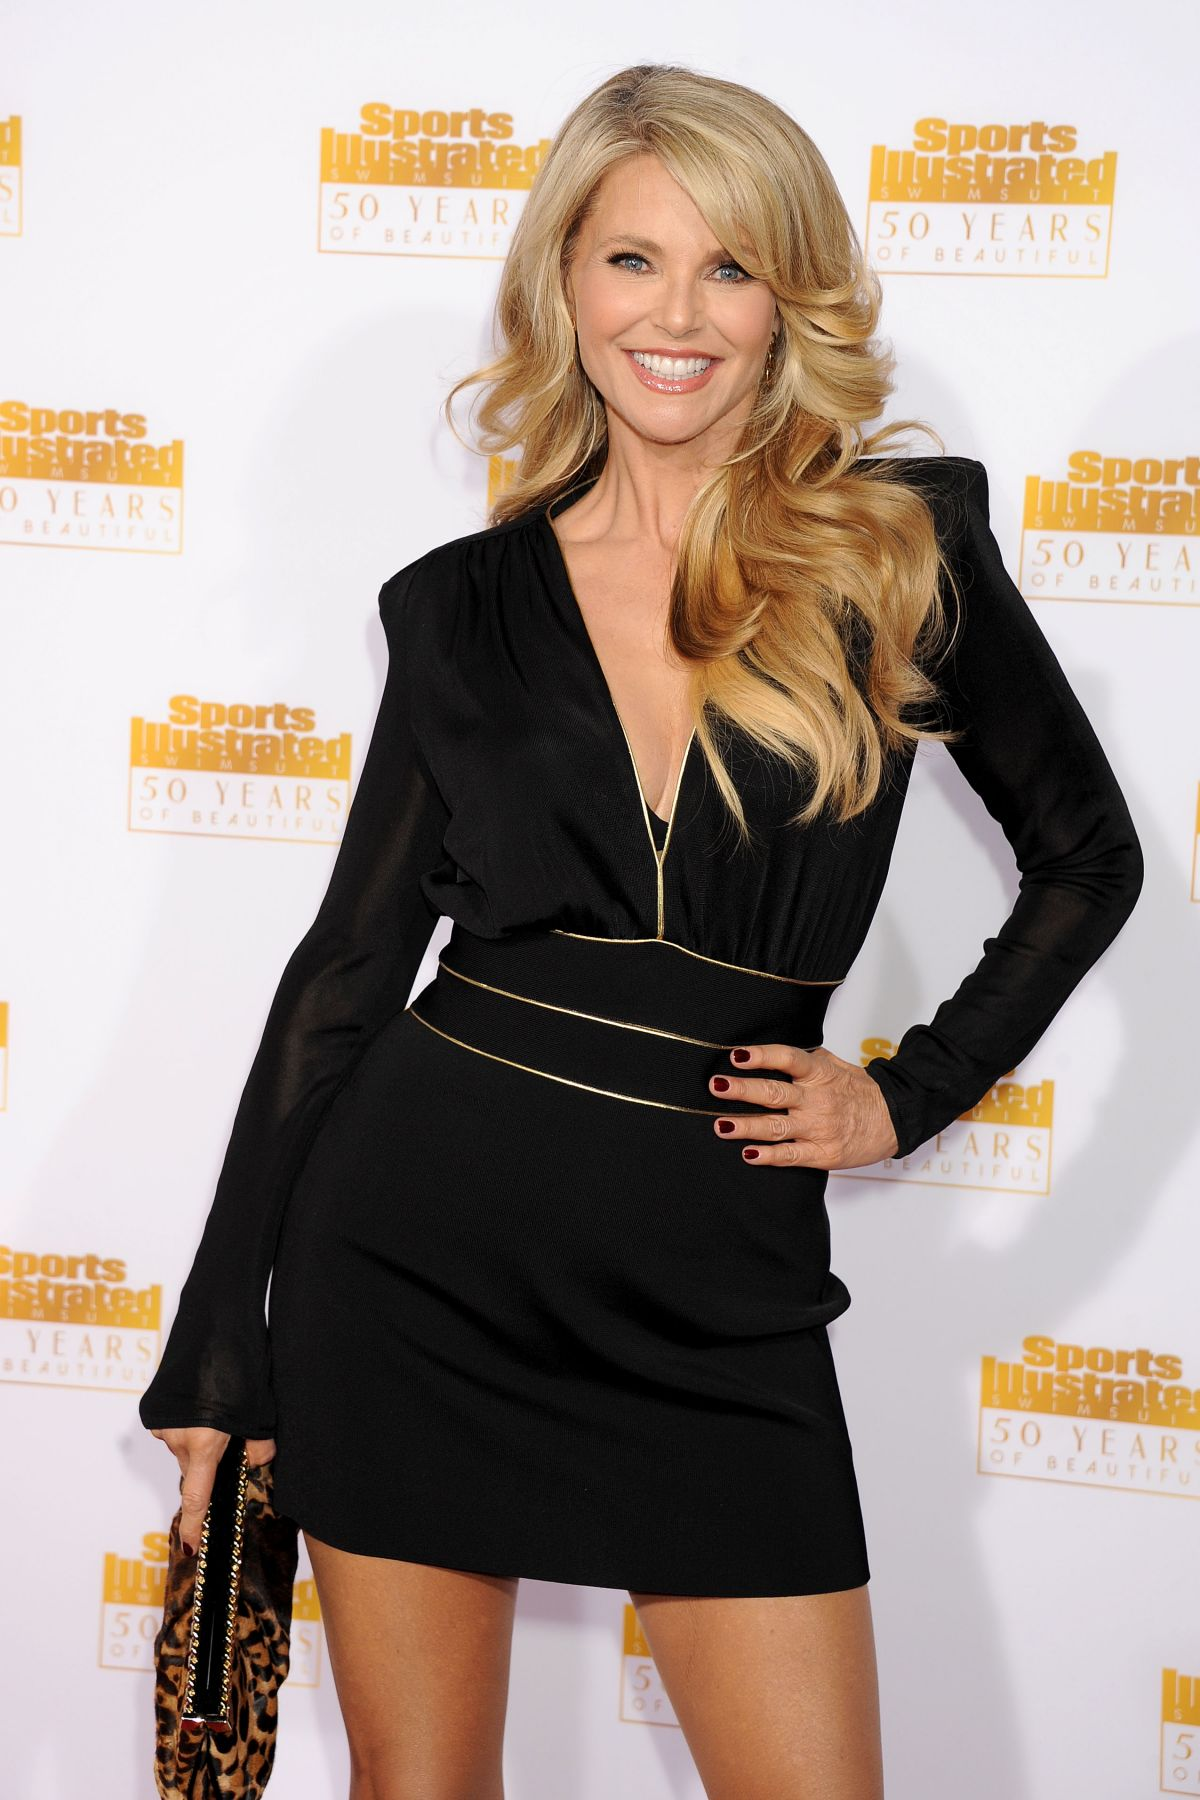 Actress/model Christie Brinkley arrives at the 50th